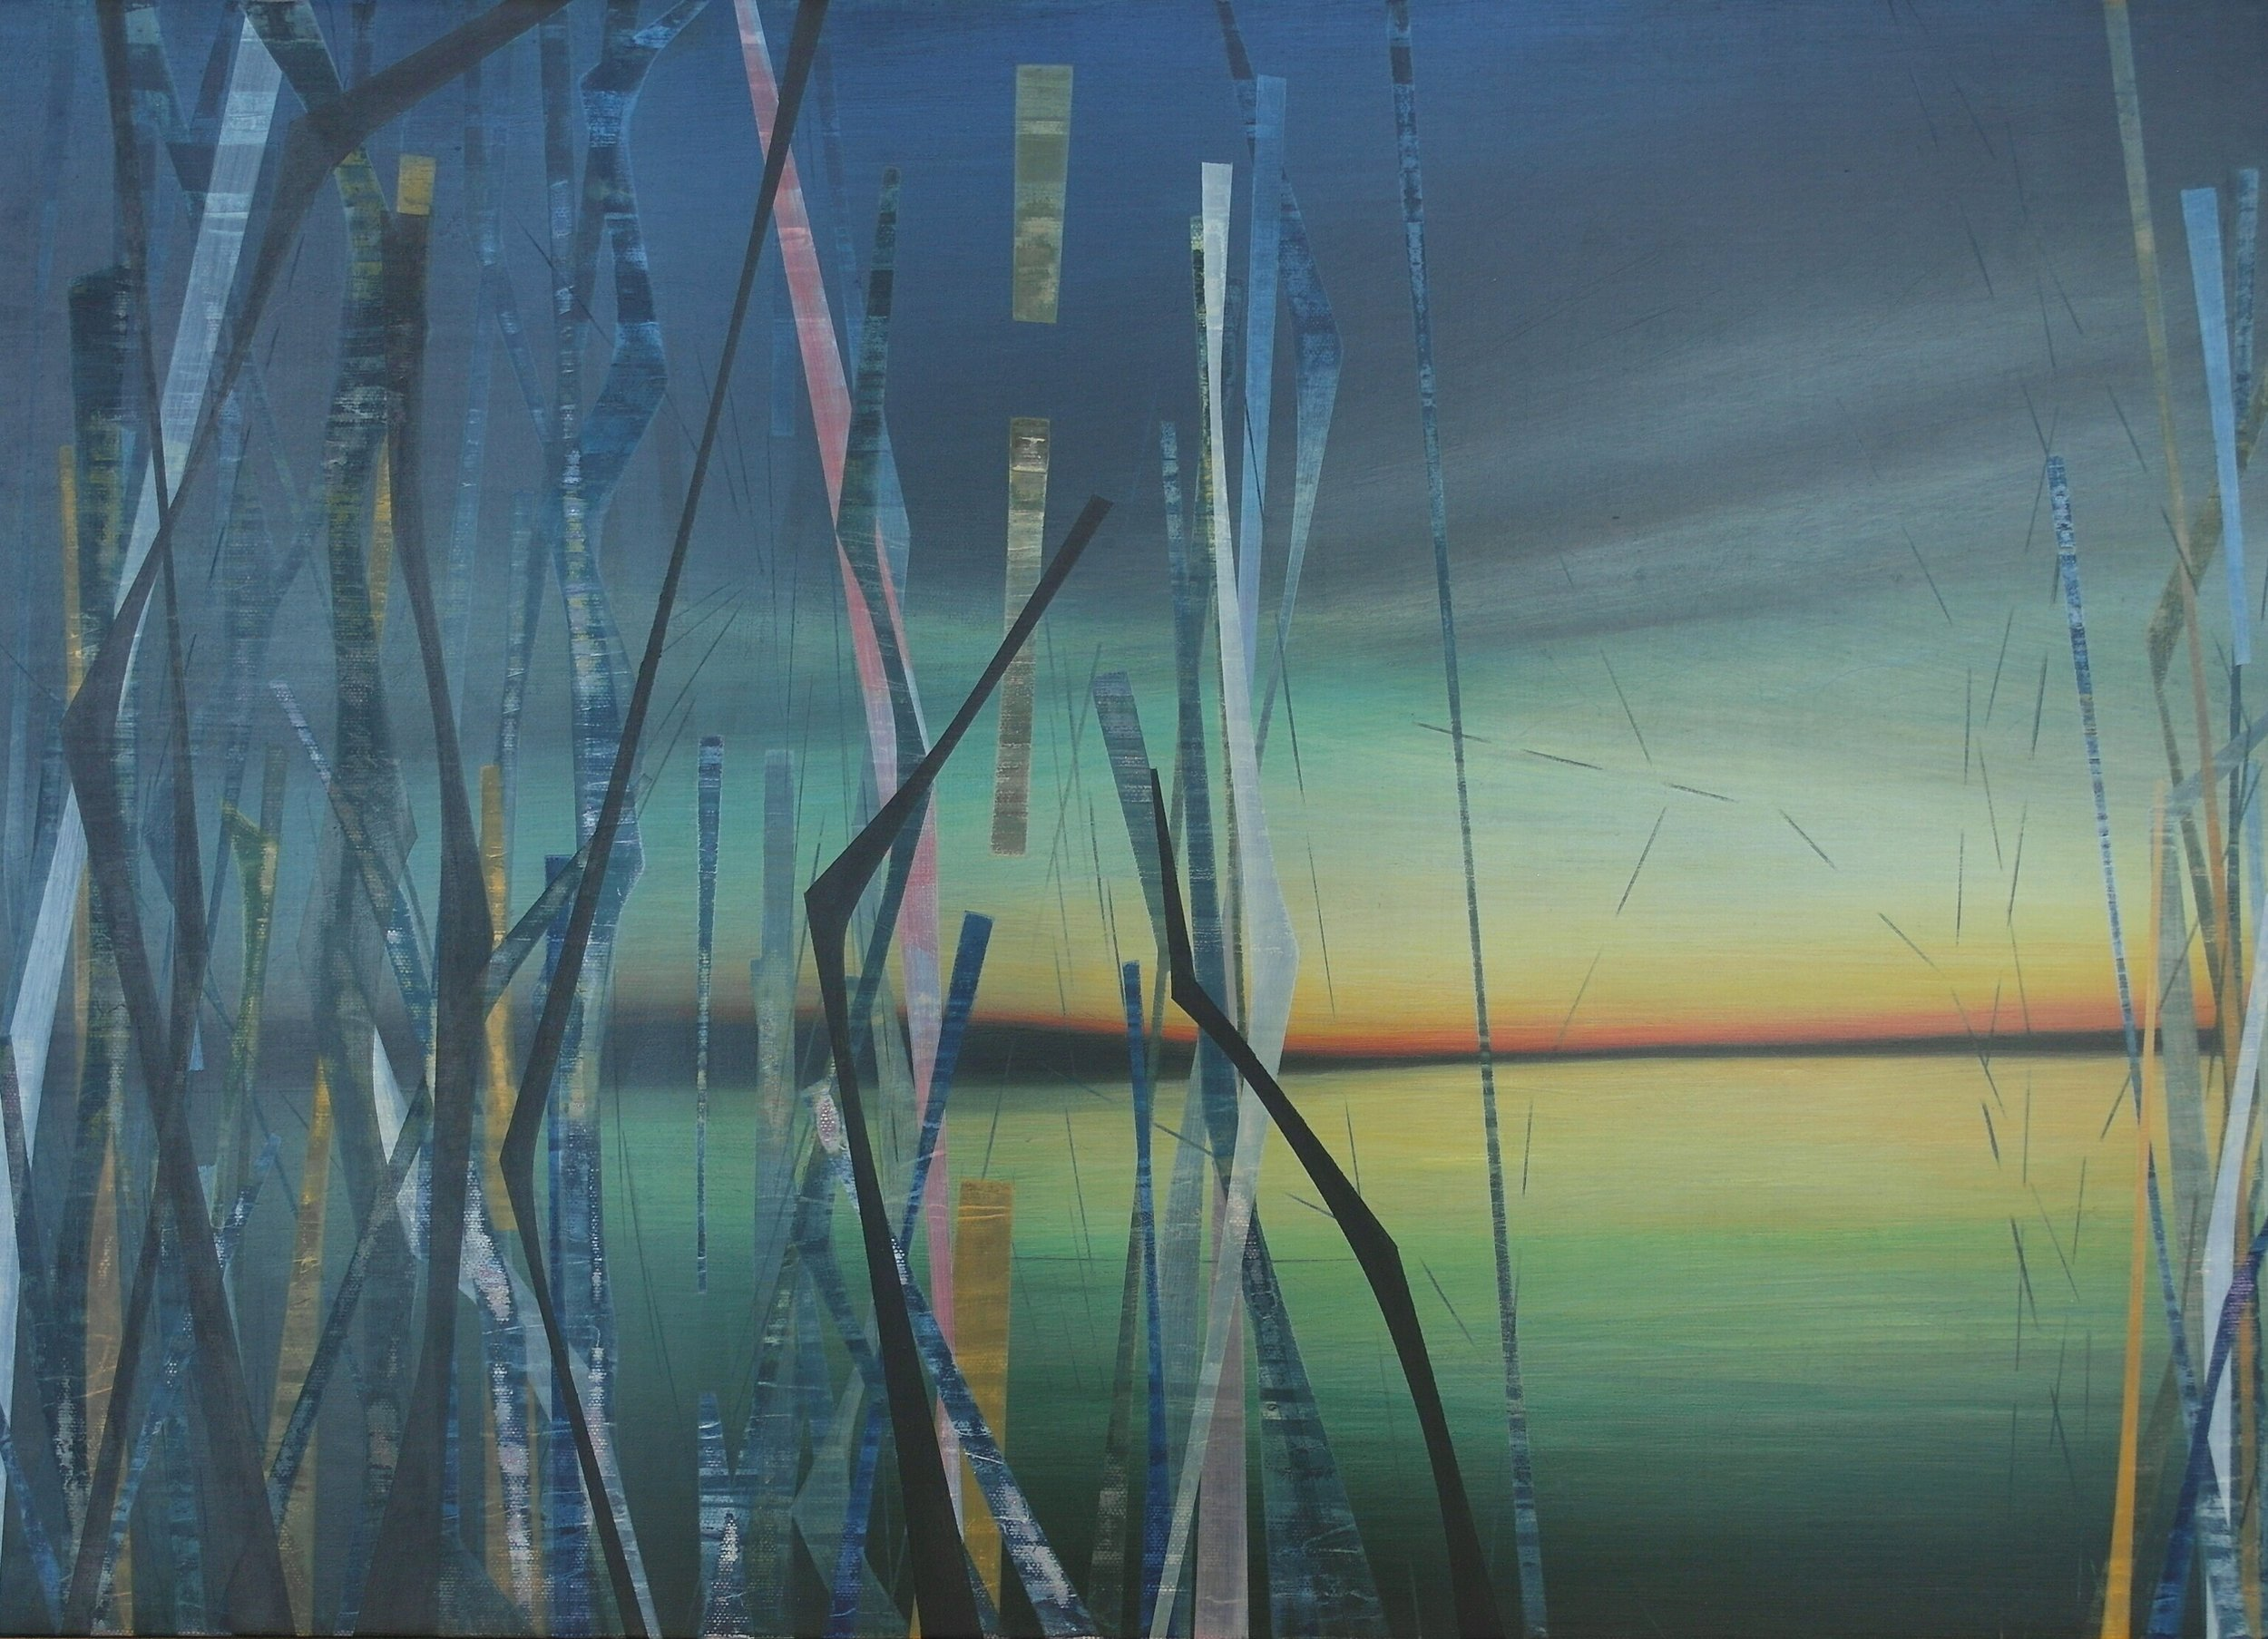 'Evening with Green' 59.5cm W x 42cm H $̶1̶,̶2̶0̶0̶  SOLD